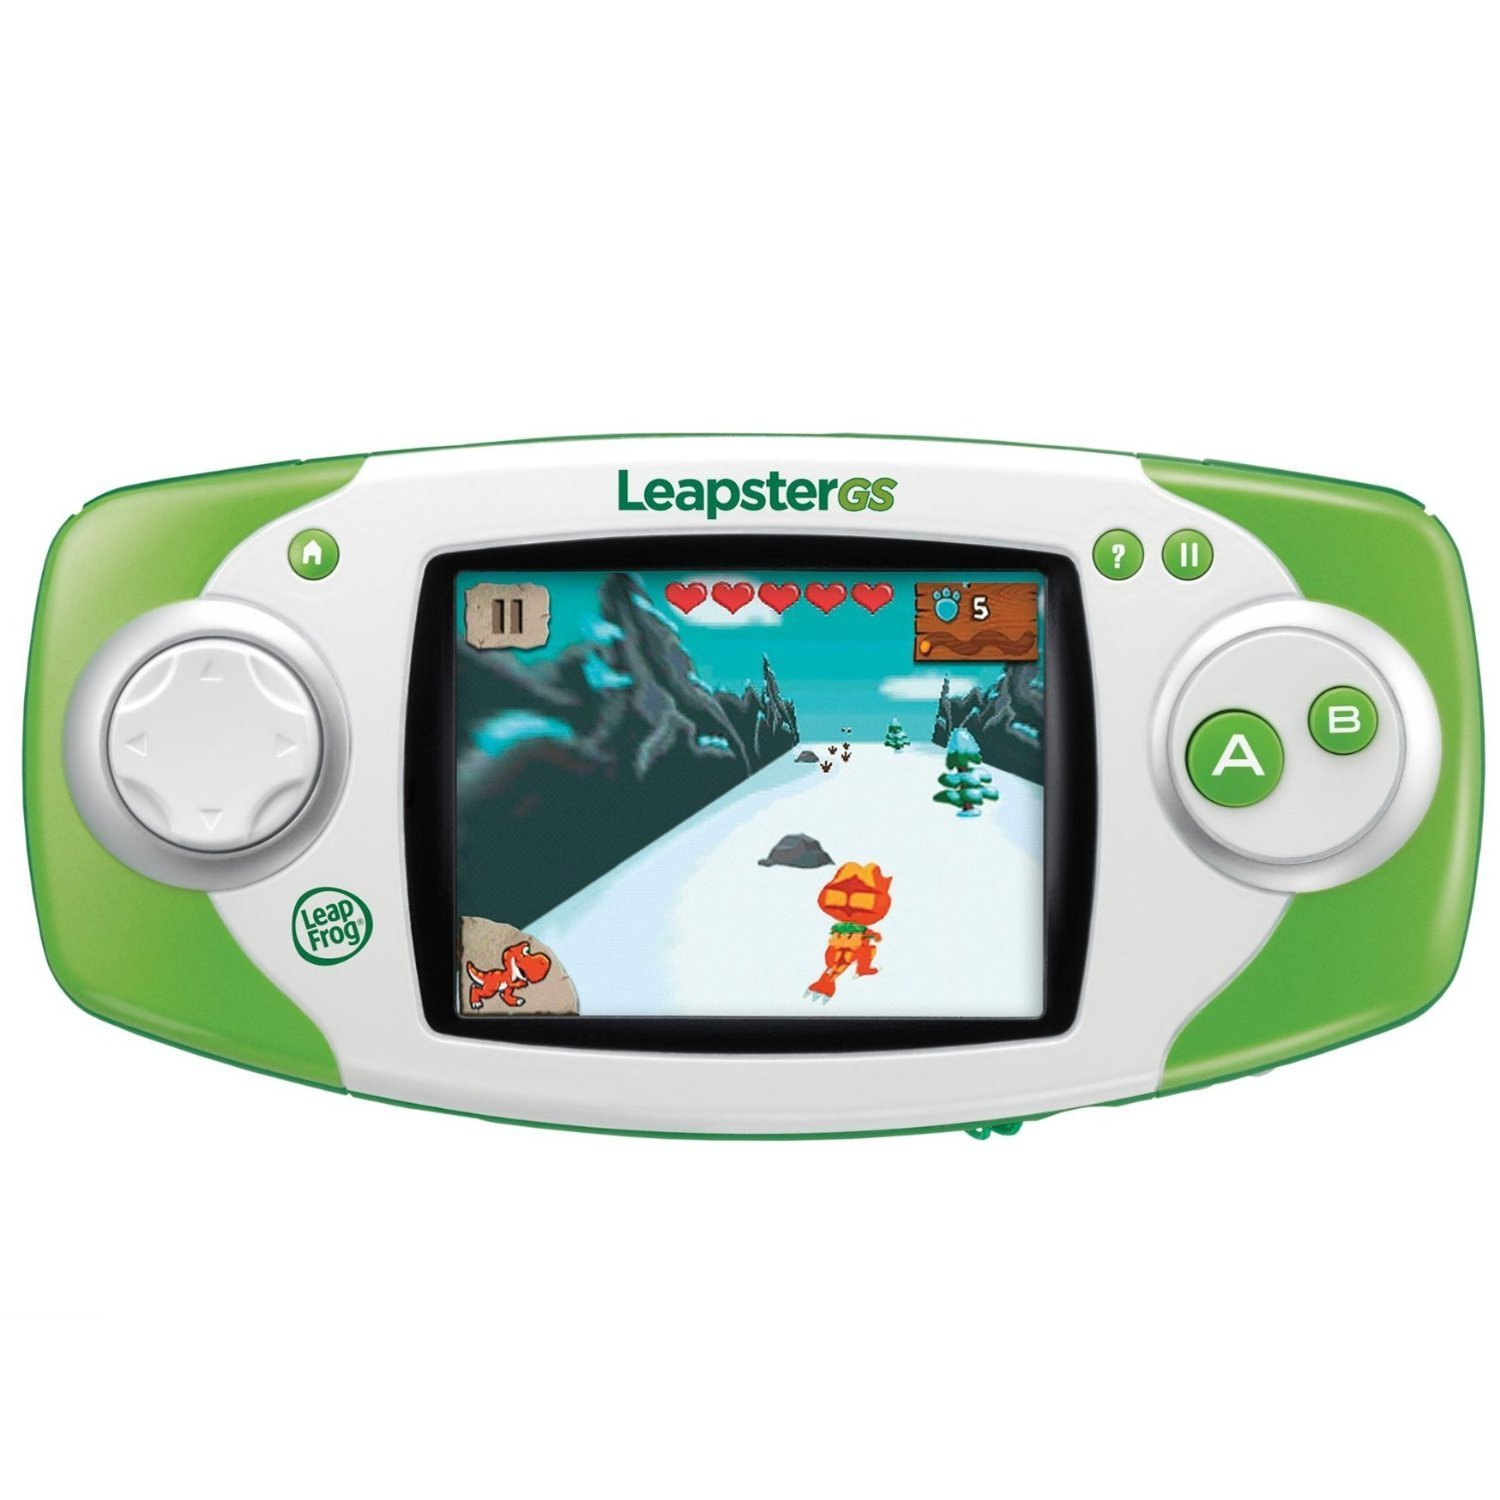 LeapFrog Leapster GS Explorer Handheld Kids Learning Tablet with Kid-Friendly Controls, 39700, Green (New Open Box)